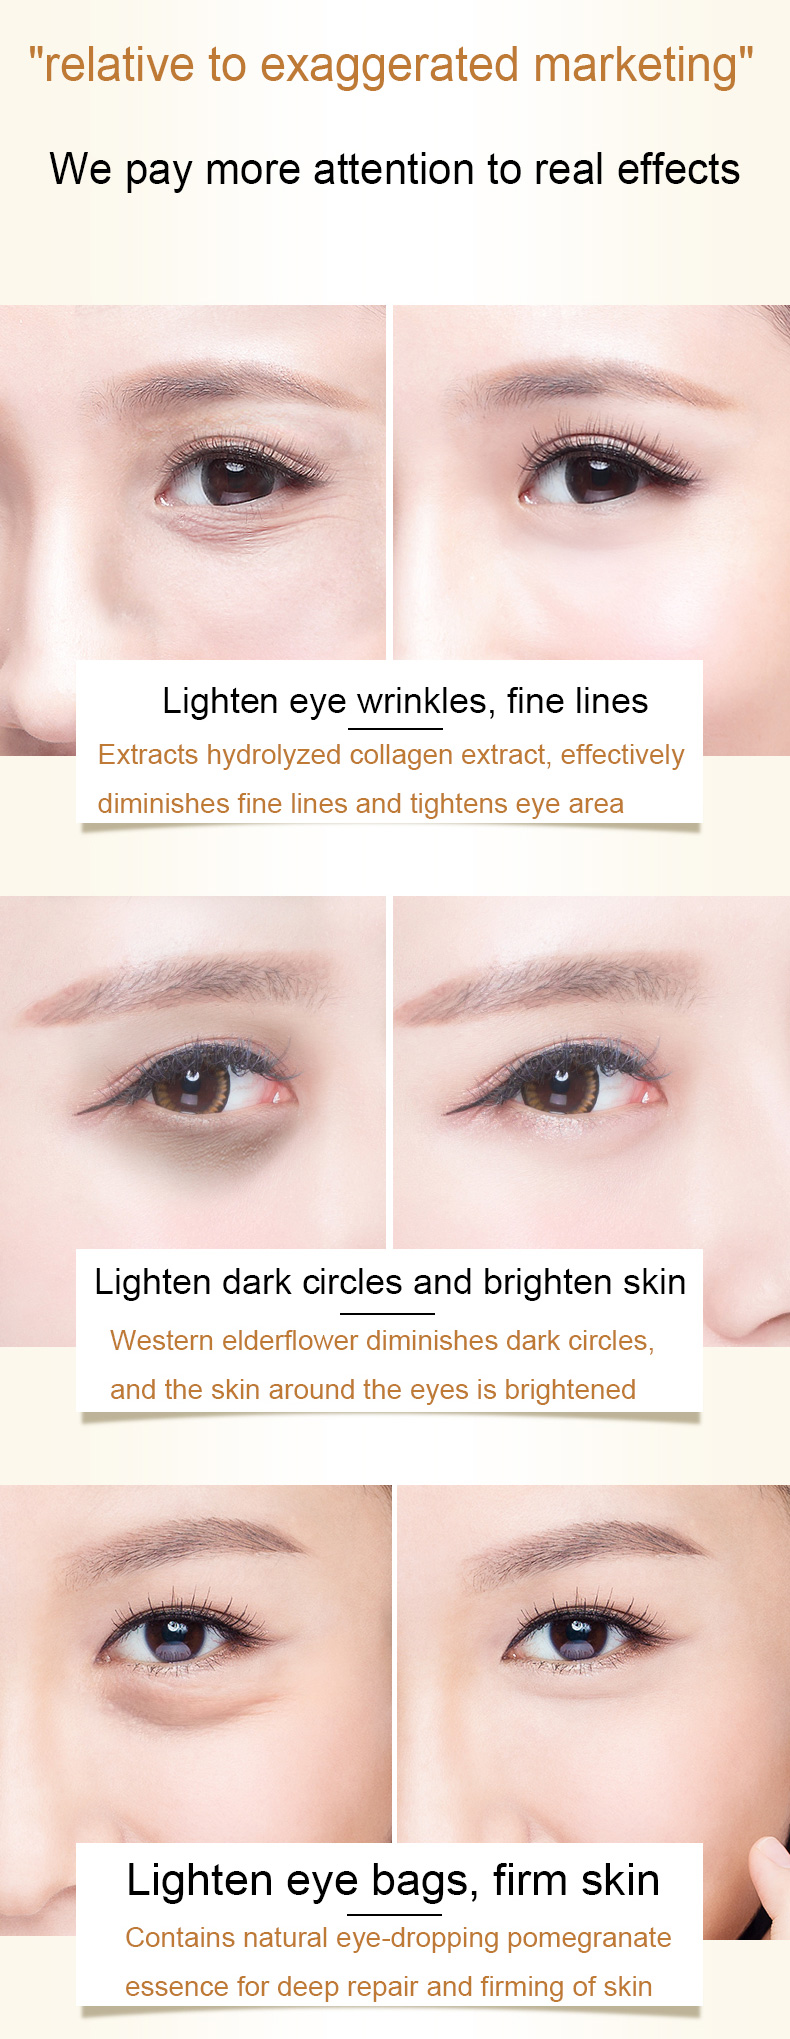 Korea-Skin-Care-Remove-Dark-Circles-Eye-Cream-Treatment-Eye-Bag-Moisturizing-Firming-Serum-Day-Night-Cream-eye-mask-patch-20g_05